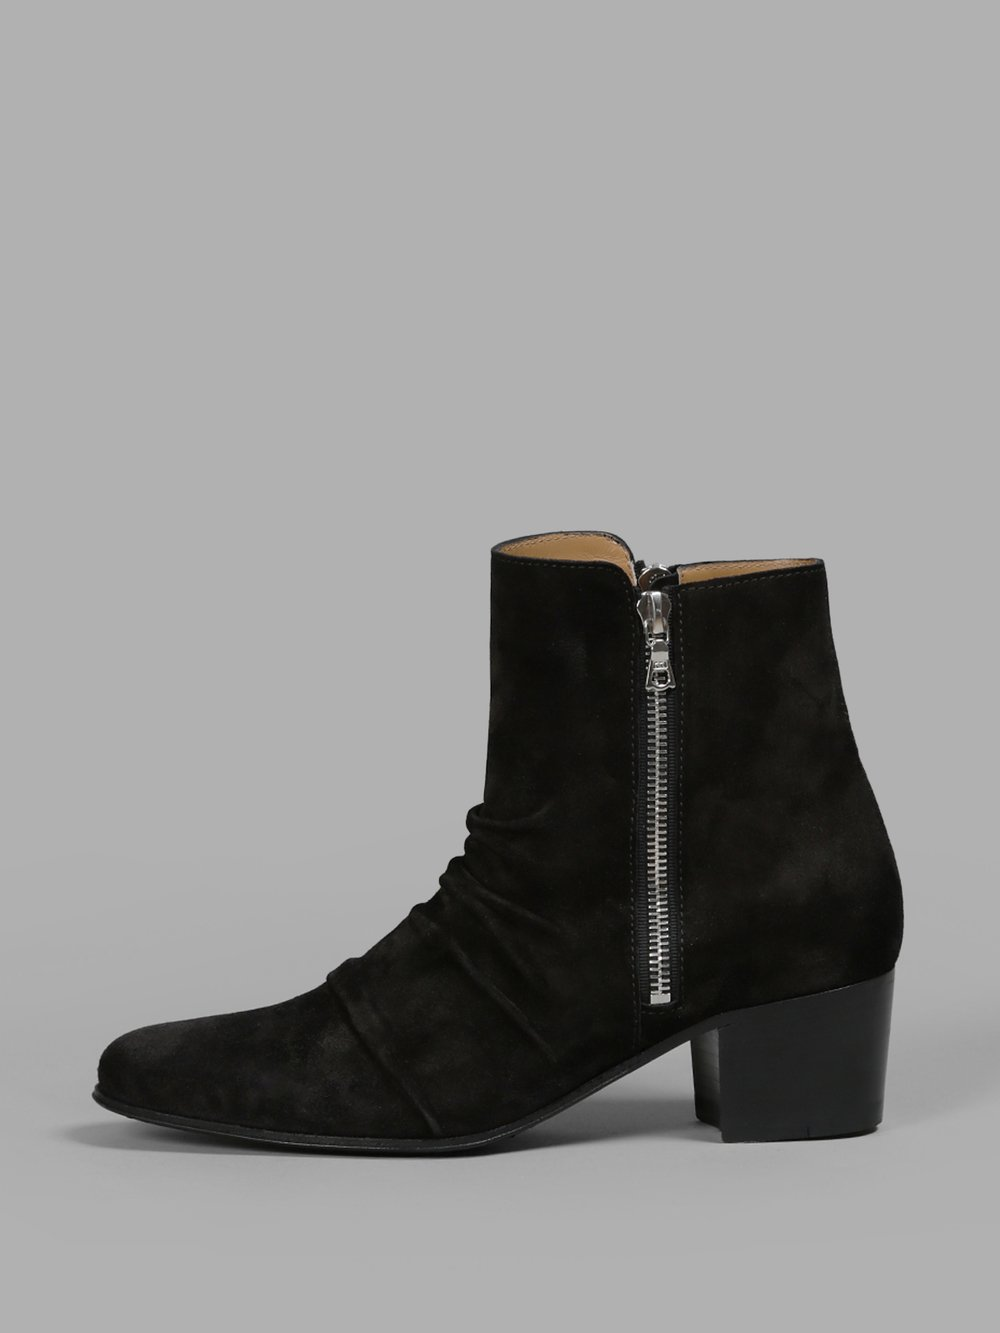 Skinny Stack Suede Ankle Boots - Black Size 6 from Antonioli